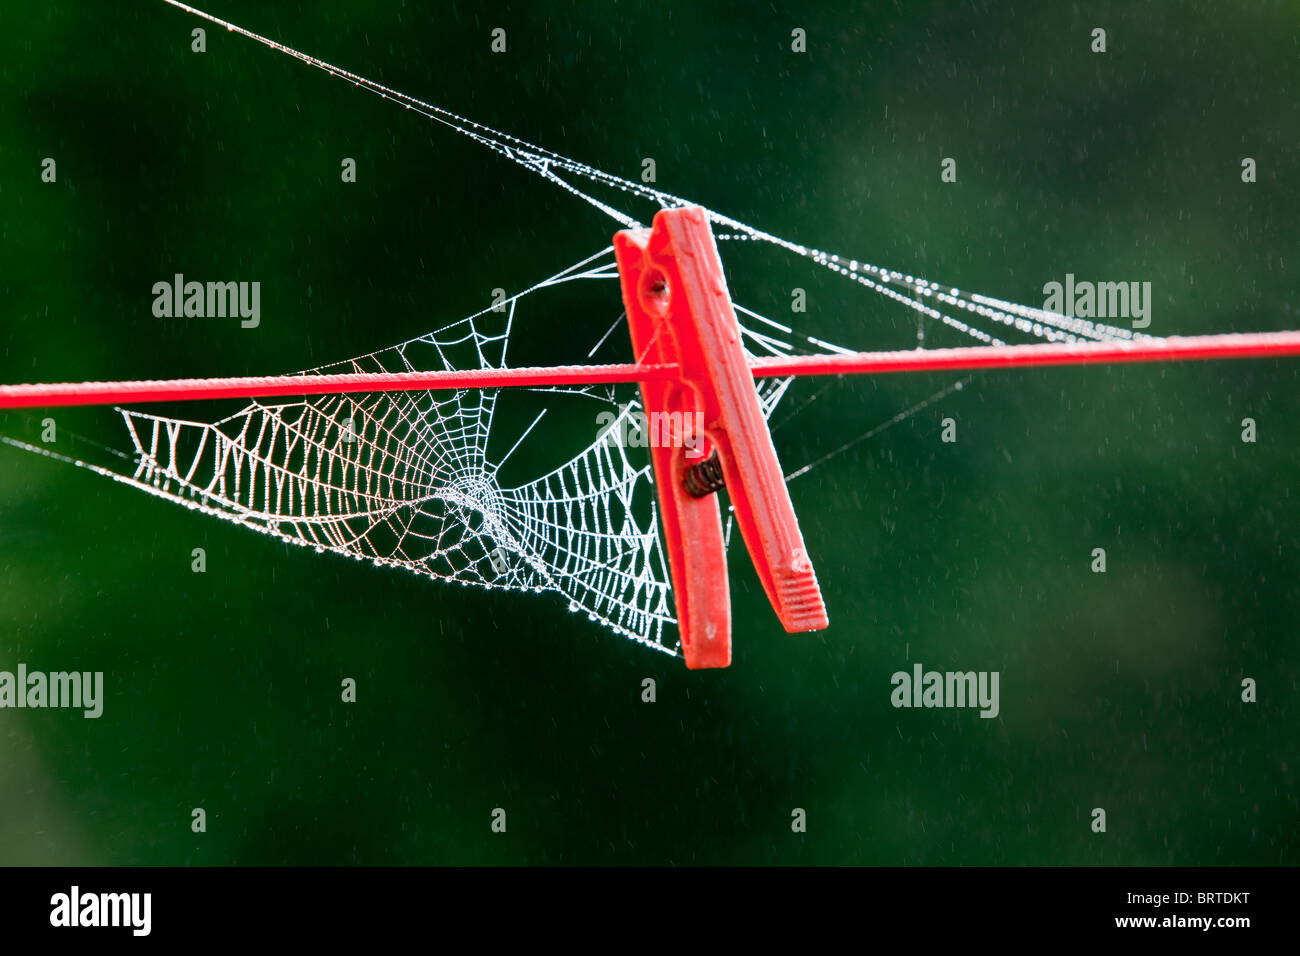 A Spiders cobweb created around a red clothes peg on a garden clothes line - Stock Image